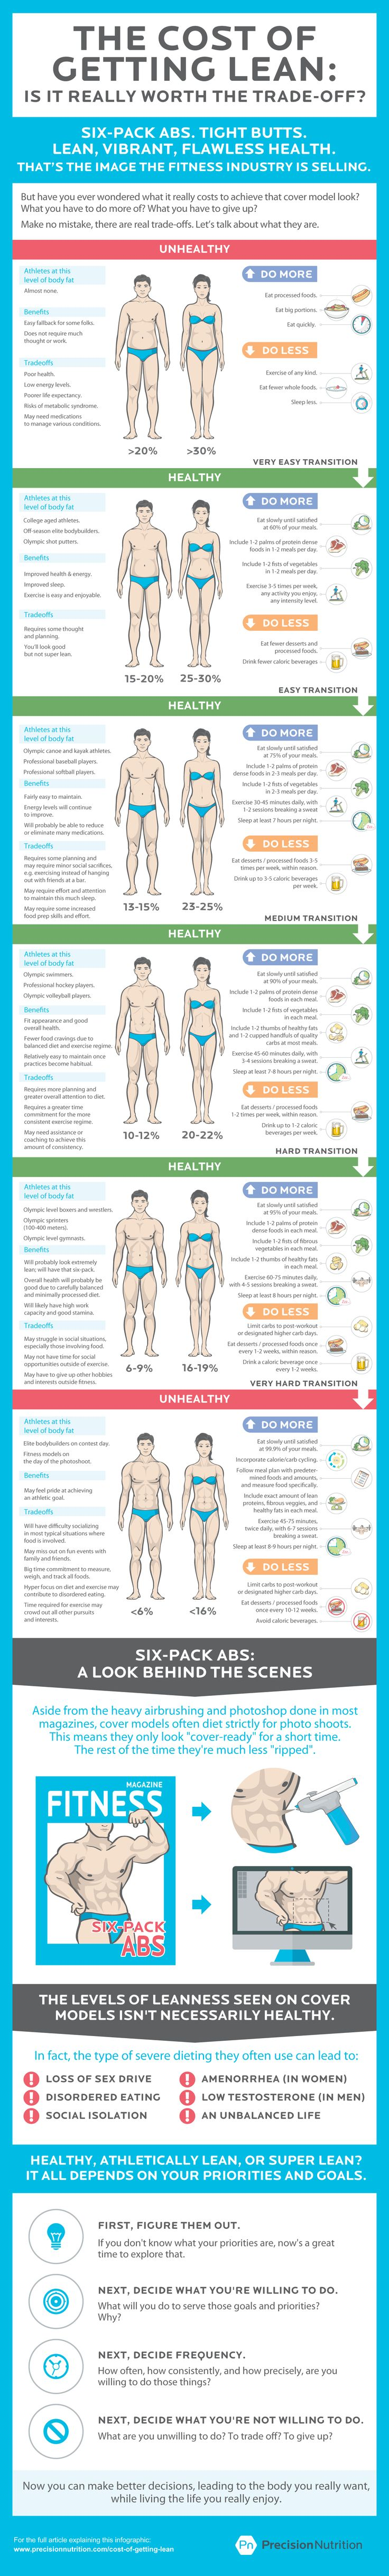 The Cost of Getting Lean #infographic #Health #Fitness #Abs #Diet